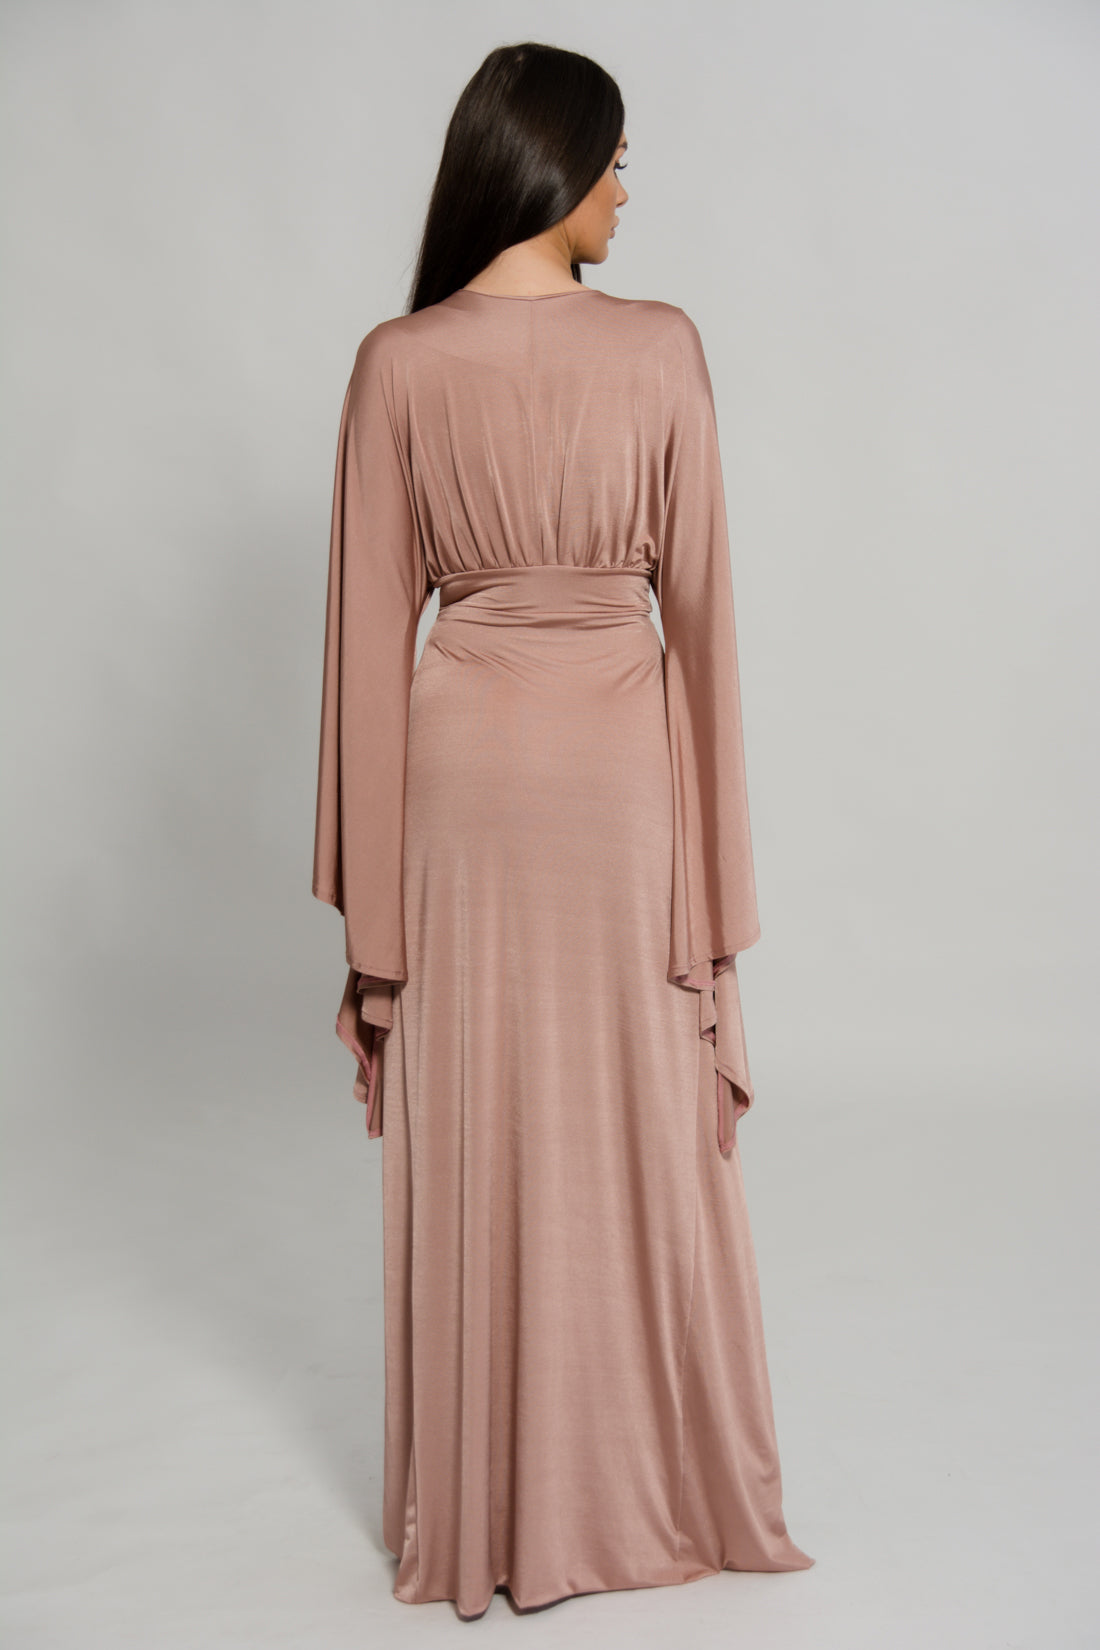 THE NEVAEH DRESS